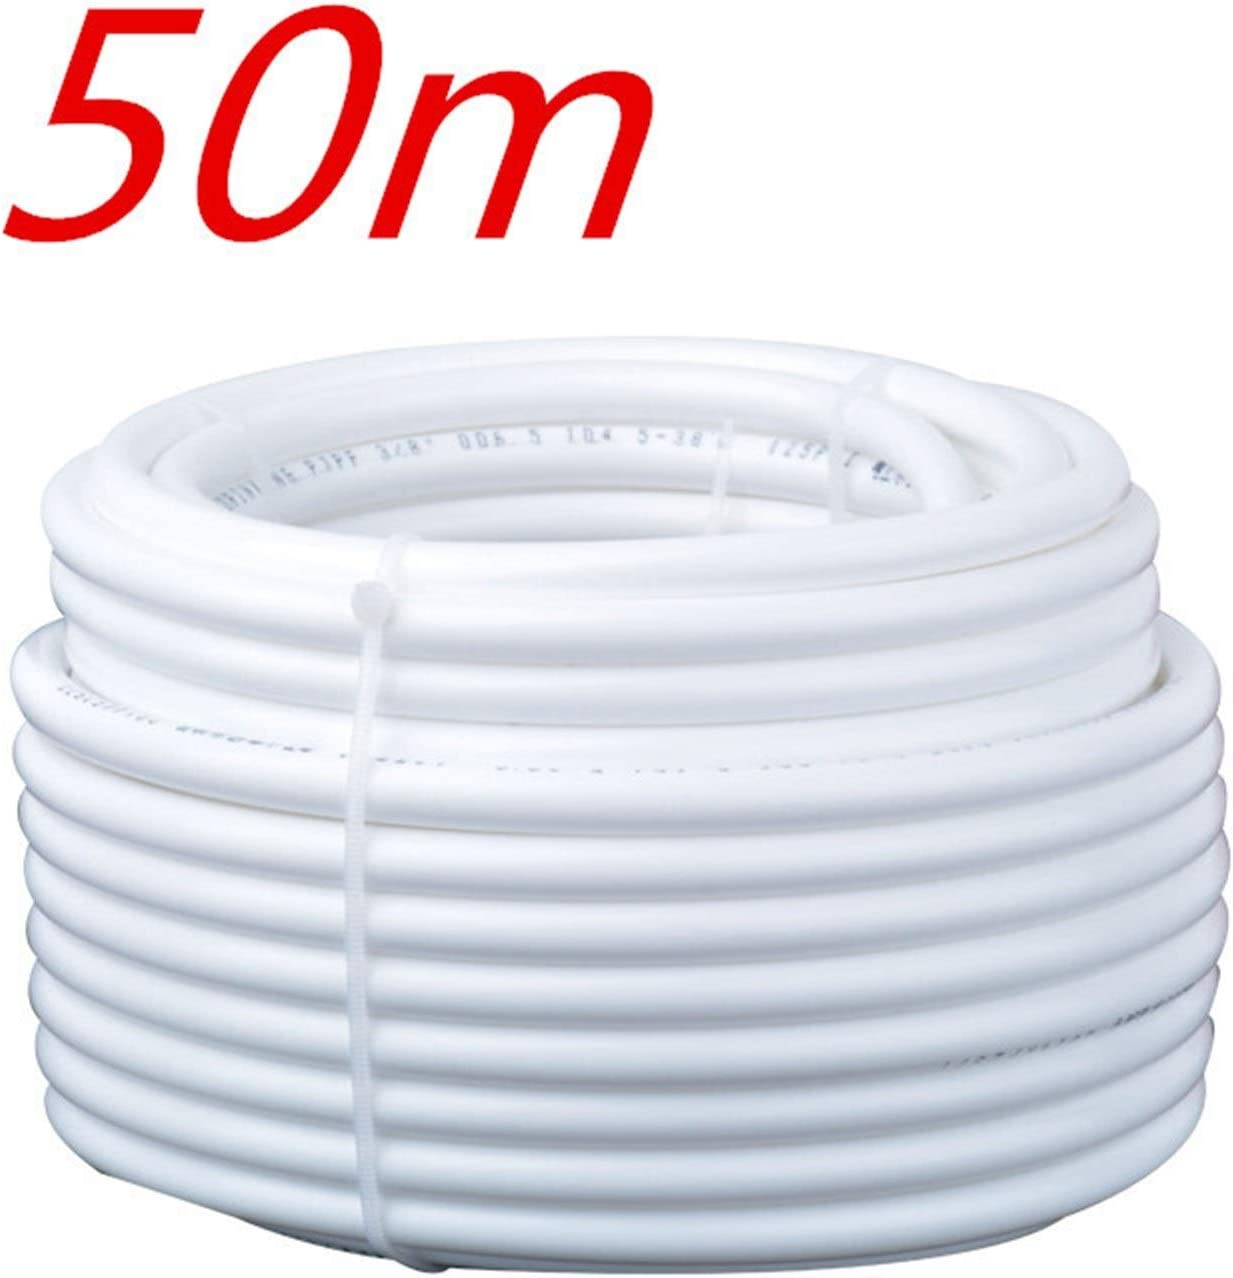 External Accessories Water Tube 3//8 Quick Hose Pipe for RO Water Filter System Aquarium PE Reverse Osmosis 3//8 Inch Easy to Install and Very Convenient. Color : 20m